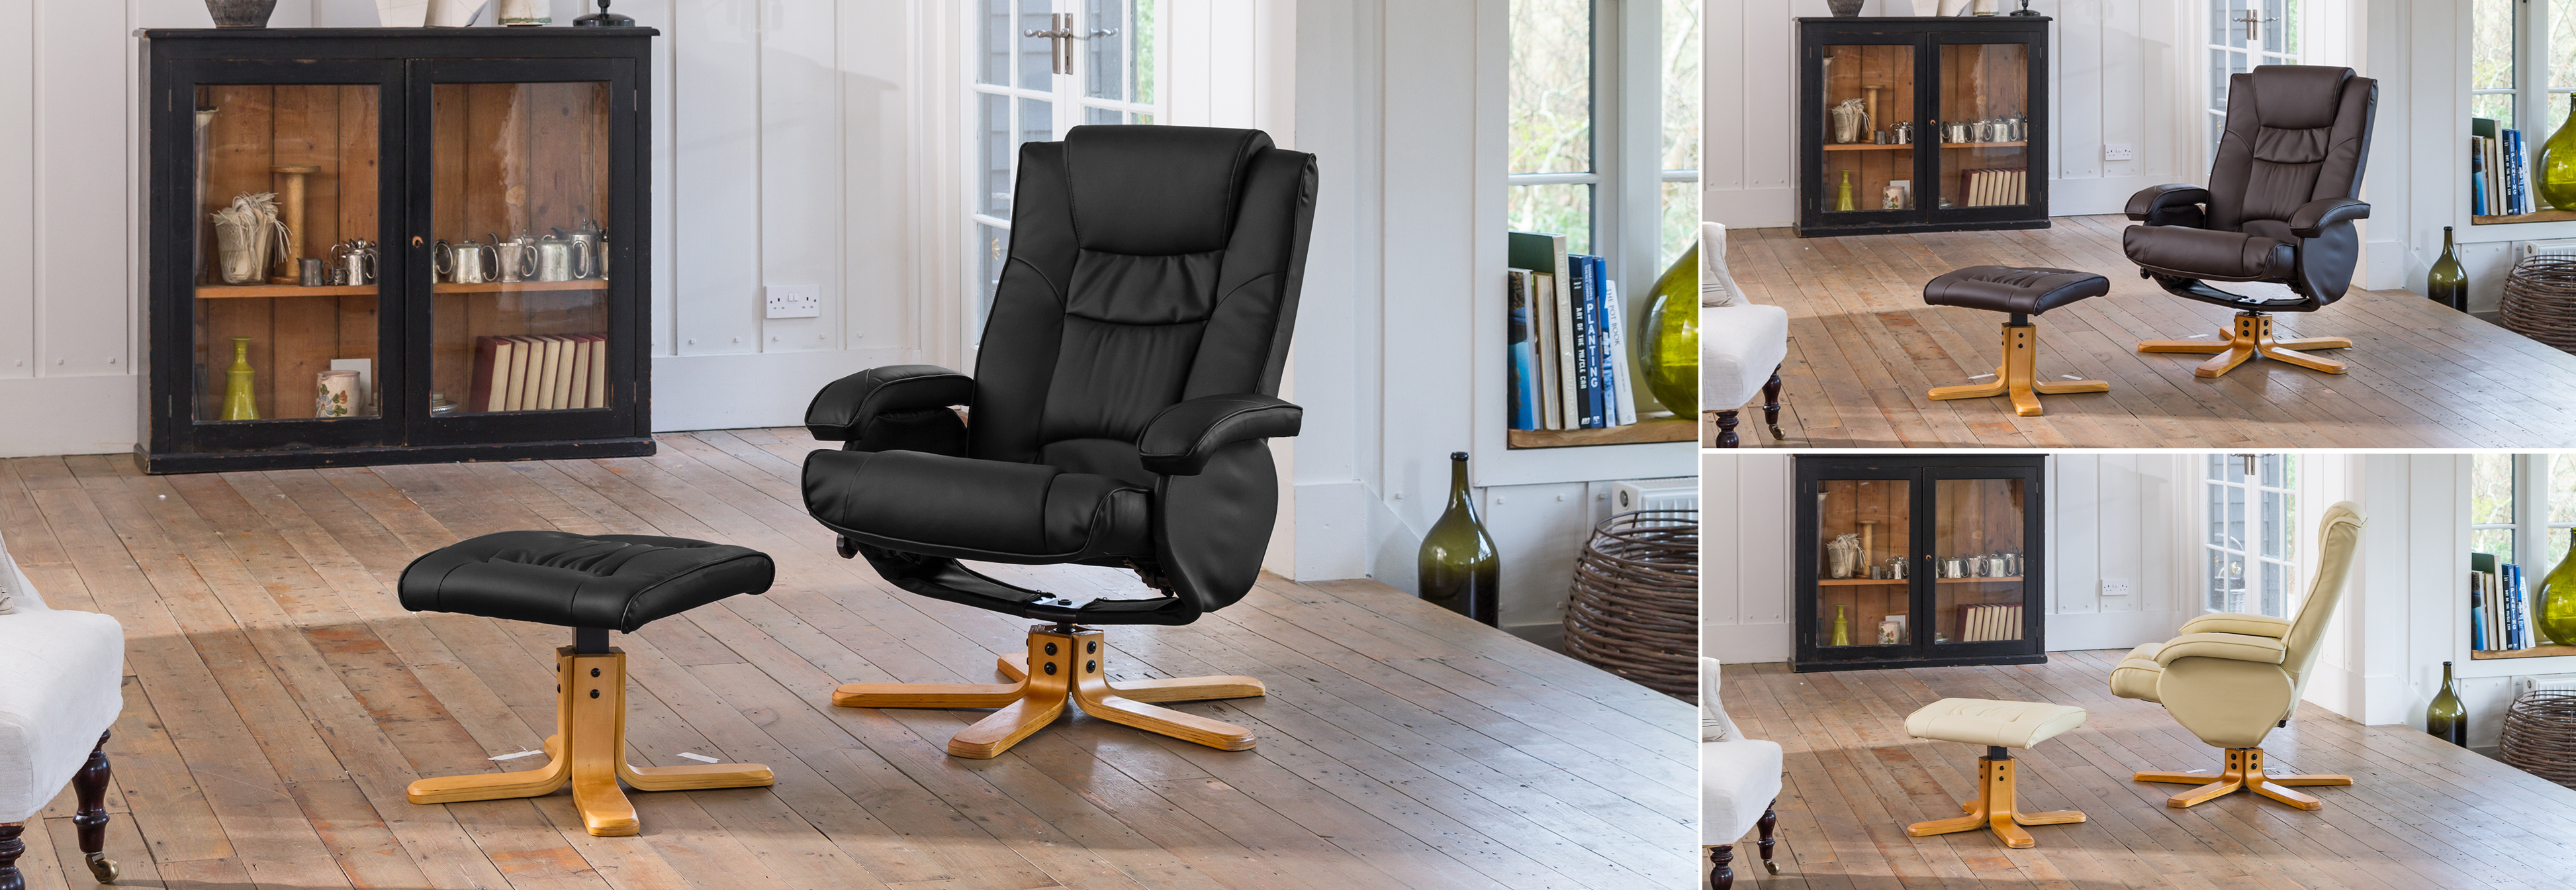 Amberley Massage with Heat Swivel Chair  black